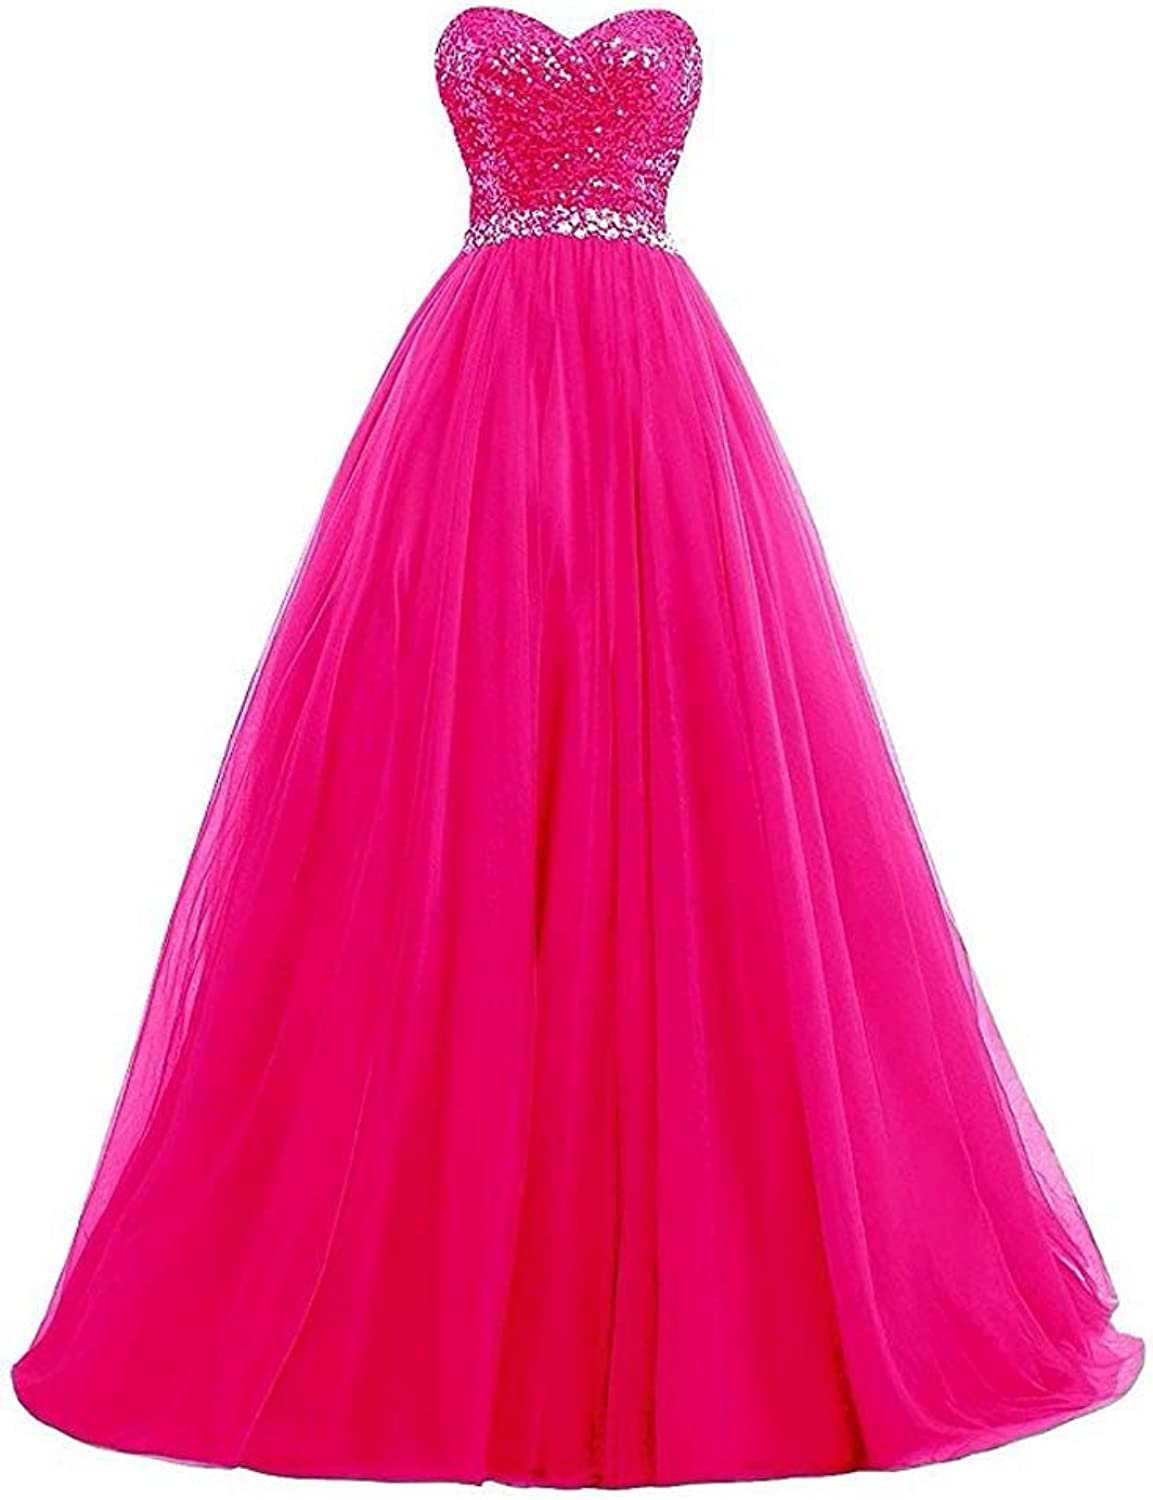 EileenDor Women's Puffy Prom Gowns Pleated Sequins Tulle Ball Gown Sweet 16 Evening Party Dresses